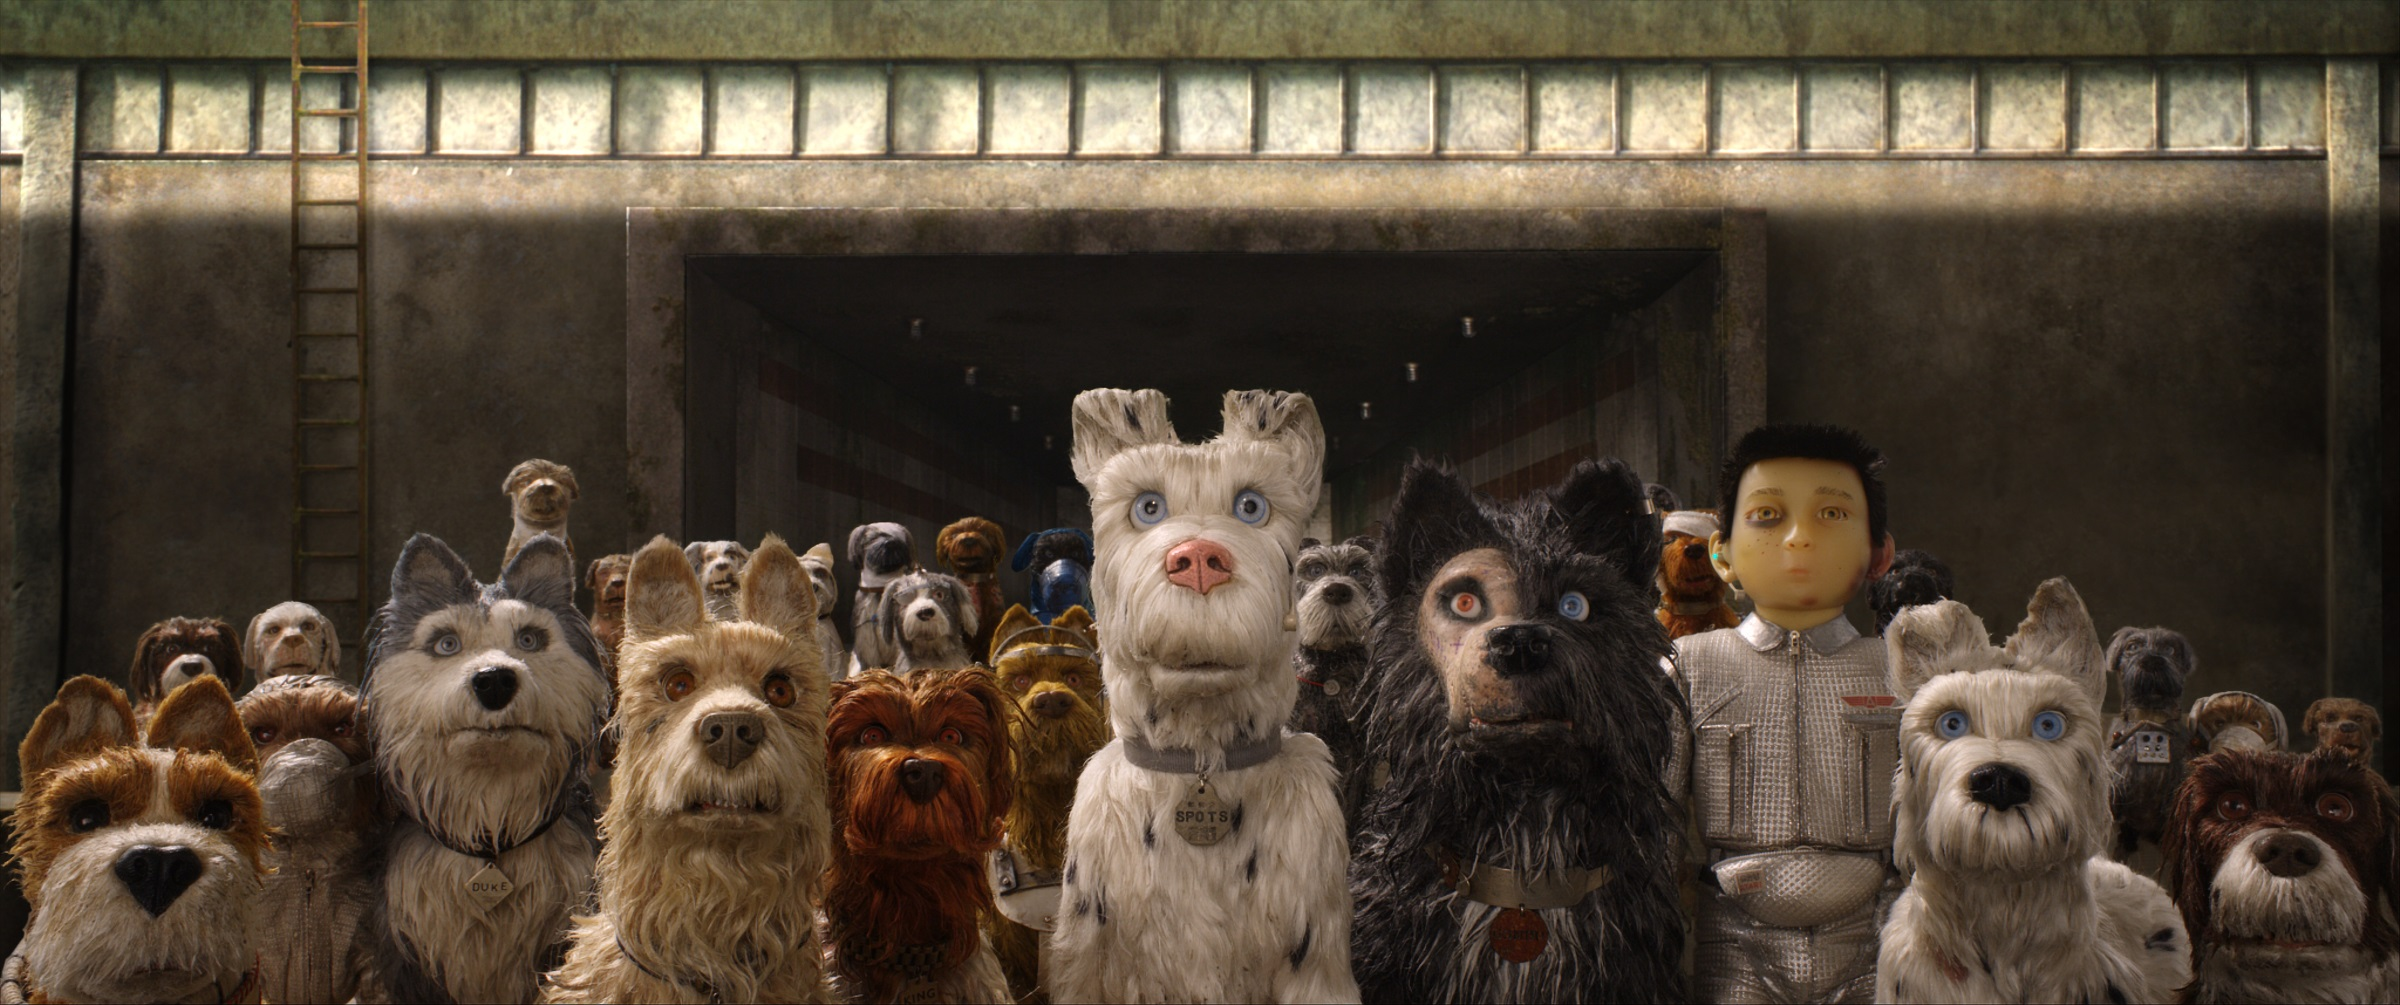 'Isle of Dogs' Delivers an Important Message